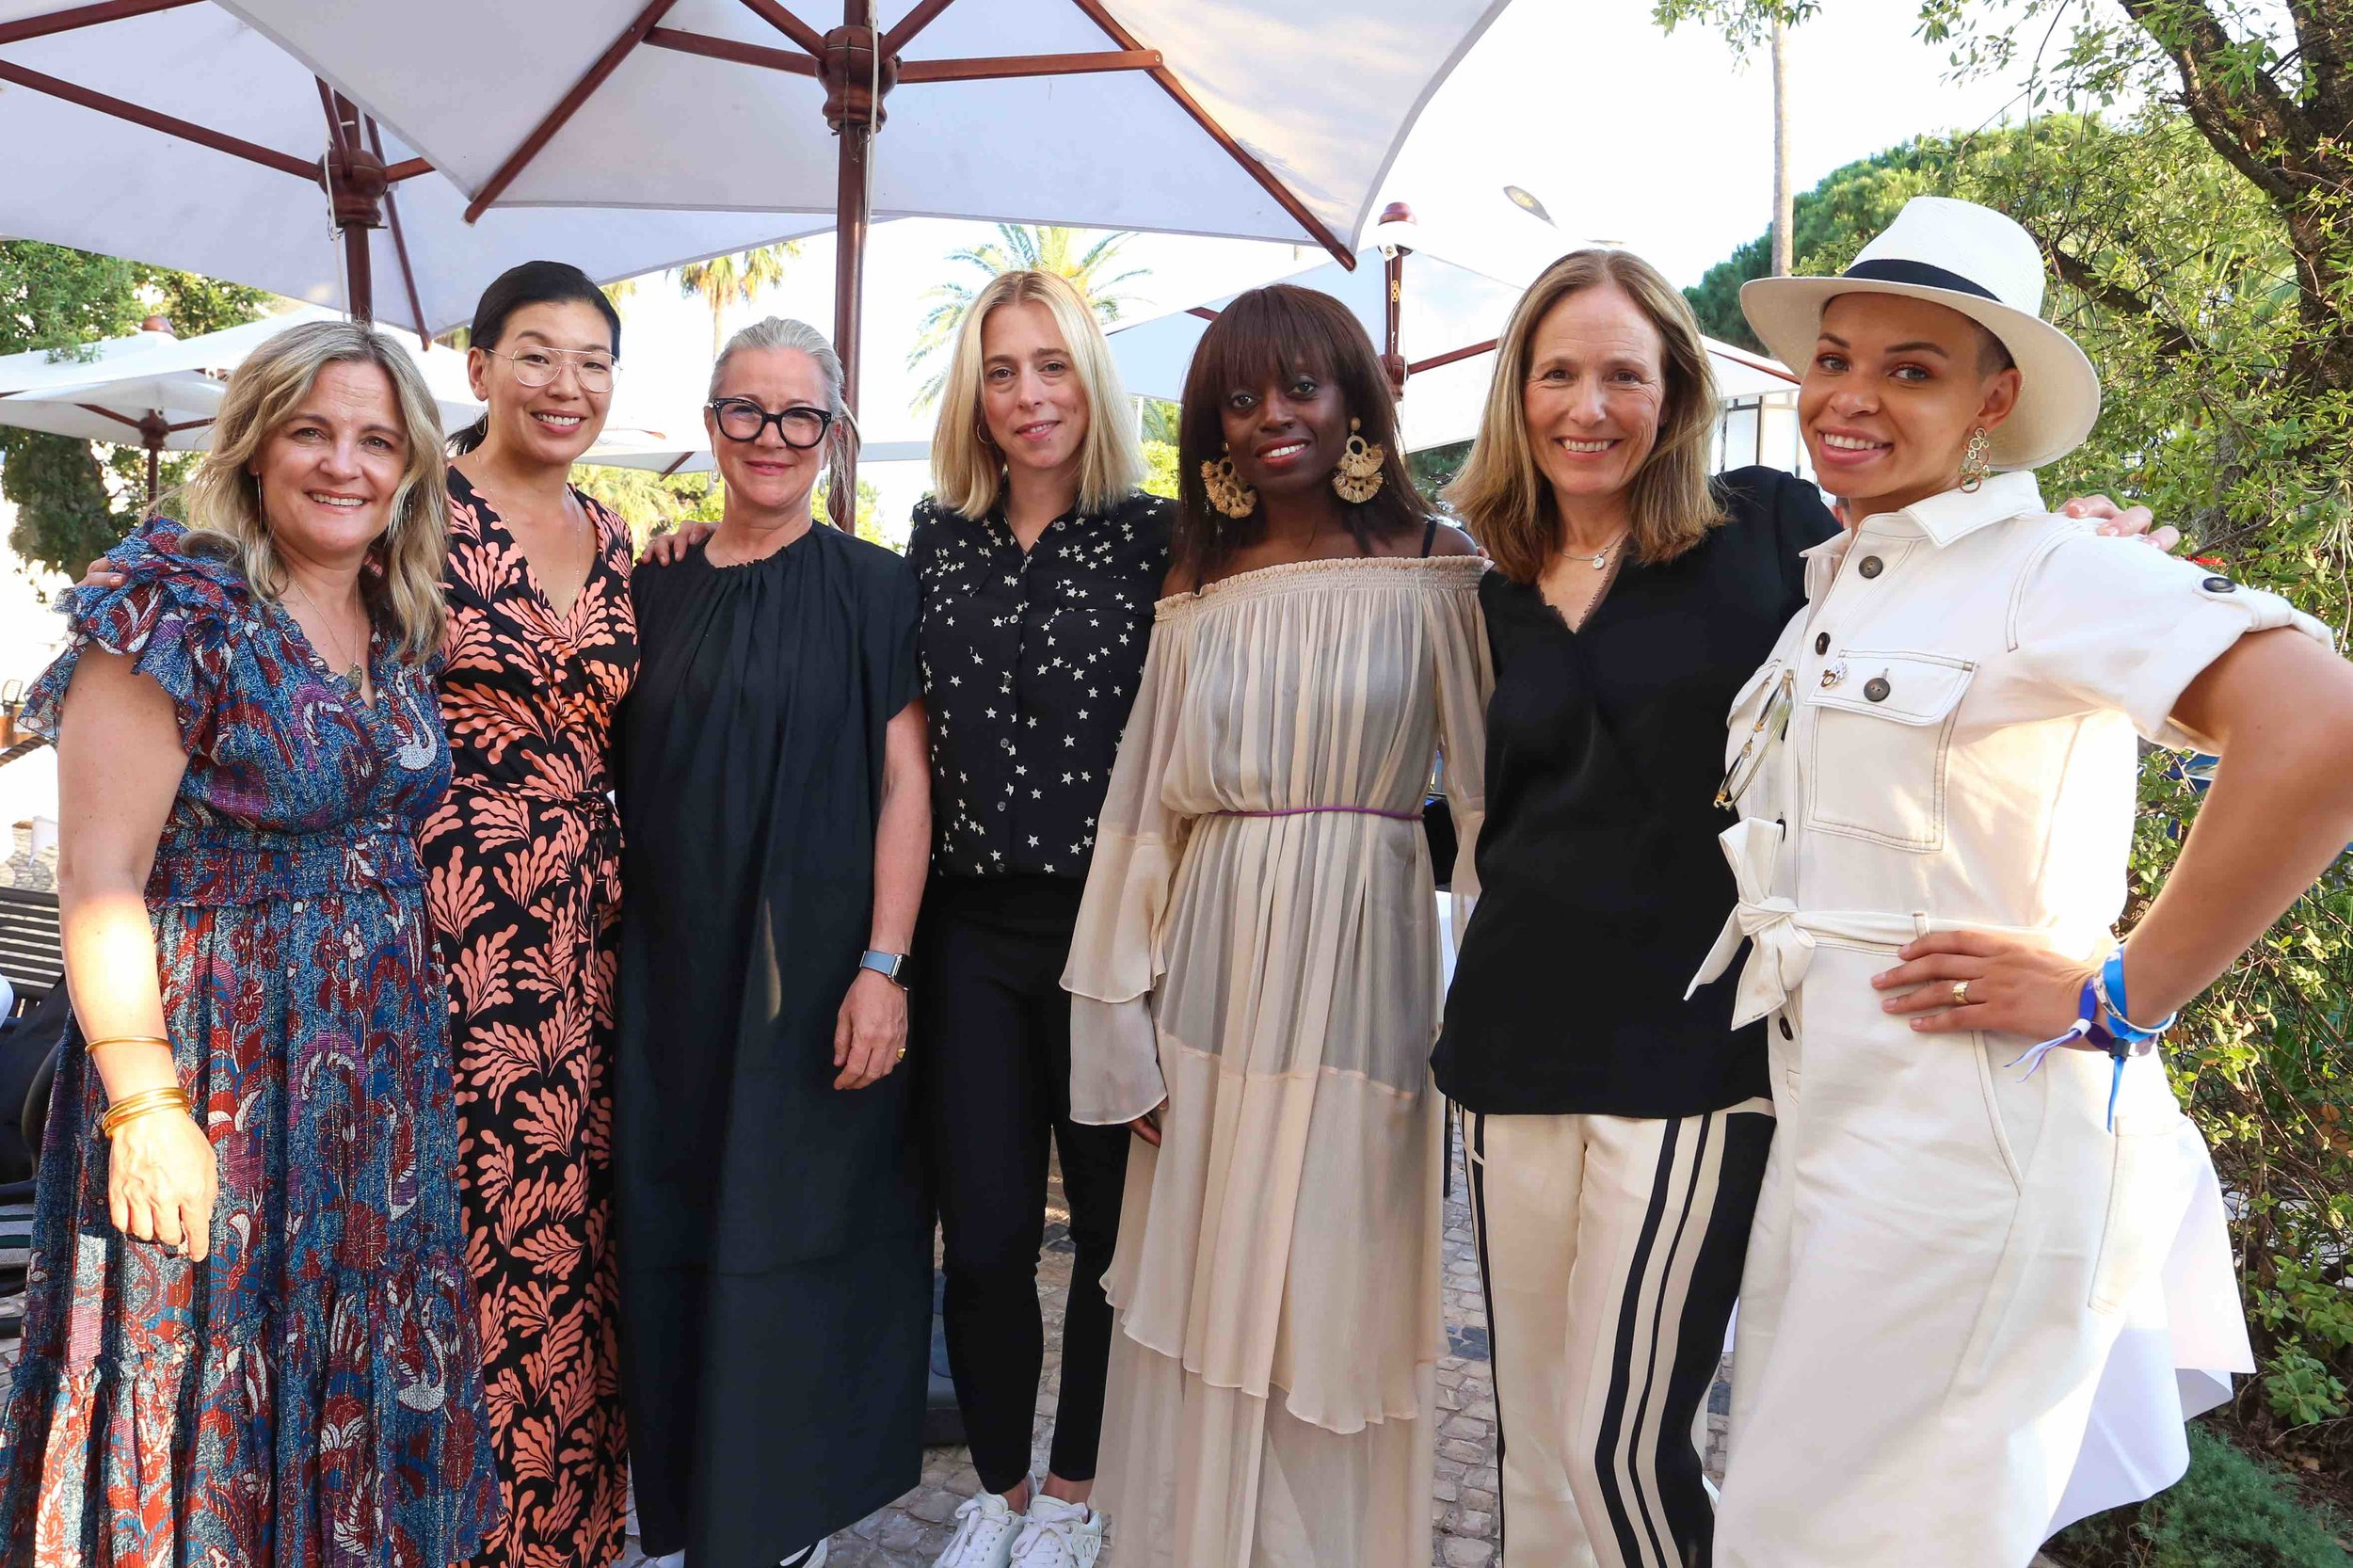 Dylan McGee (Makers), Ai-jen Poo (Domestic Workers Alliance), Colleen deCourcy (Wieden+Kennedy), Catherine St Laurent (Pivotal Ventures), Dee Poku (Founder, WIE), Holly Gordon (Participant Productions), Blair Imani (Muslims For Progressive Values)